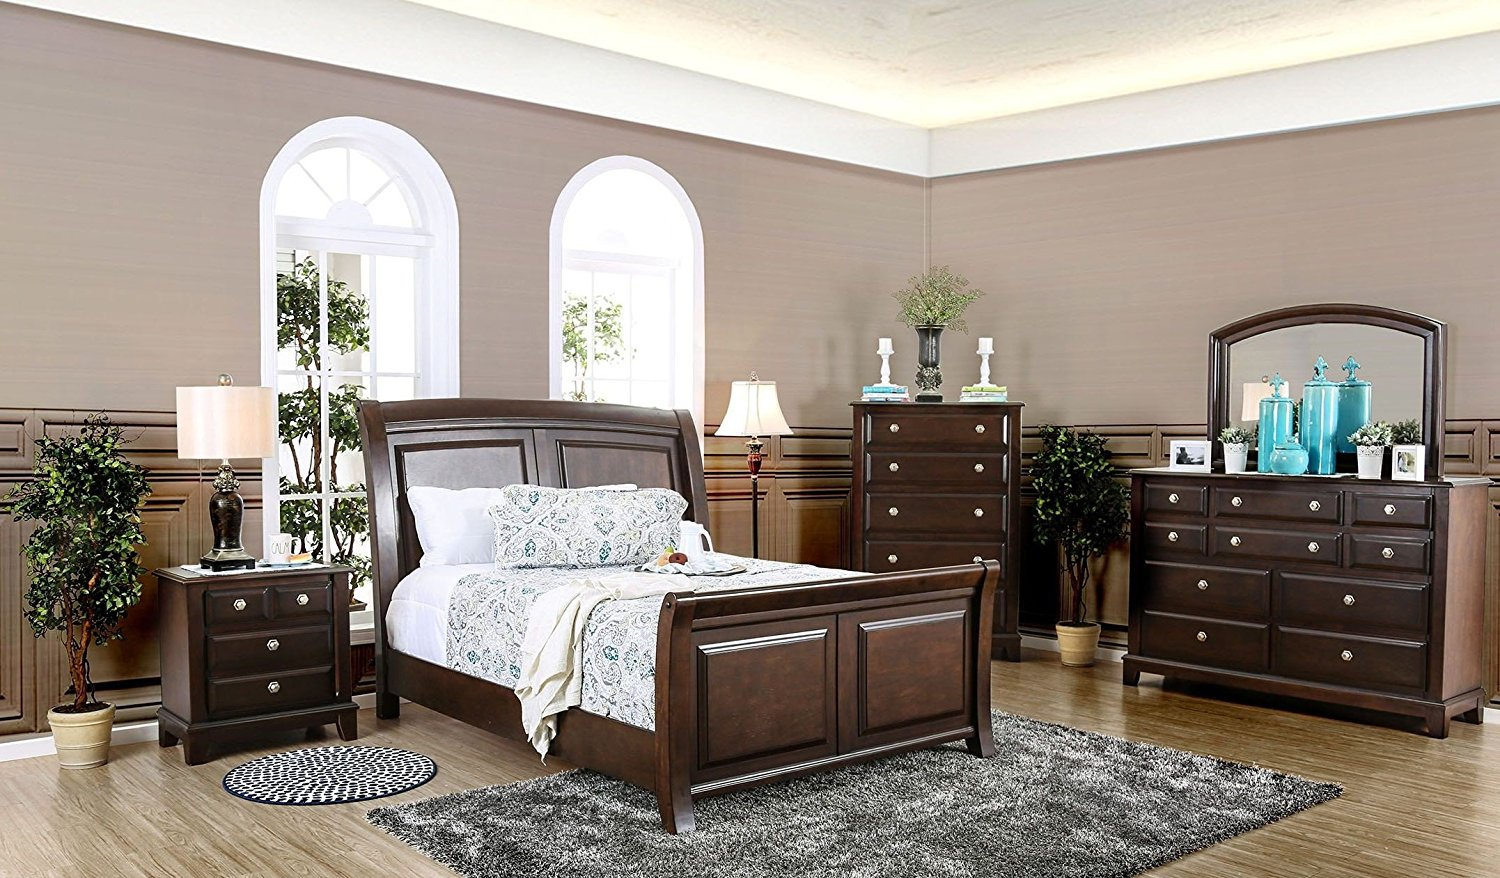 Buy New Casual Contemporary Master Bedroom Furniture New